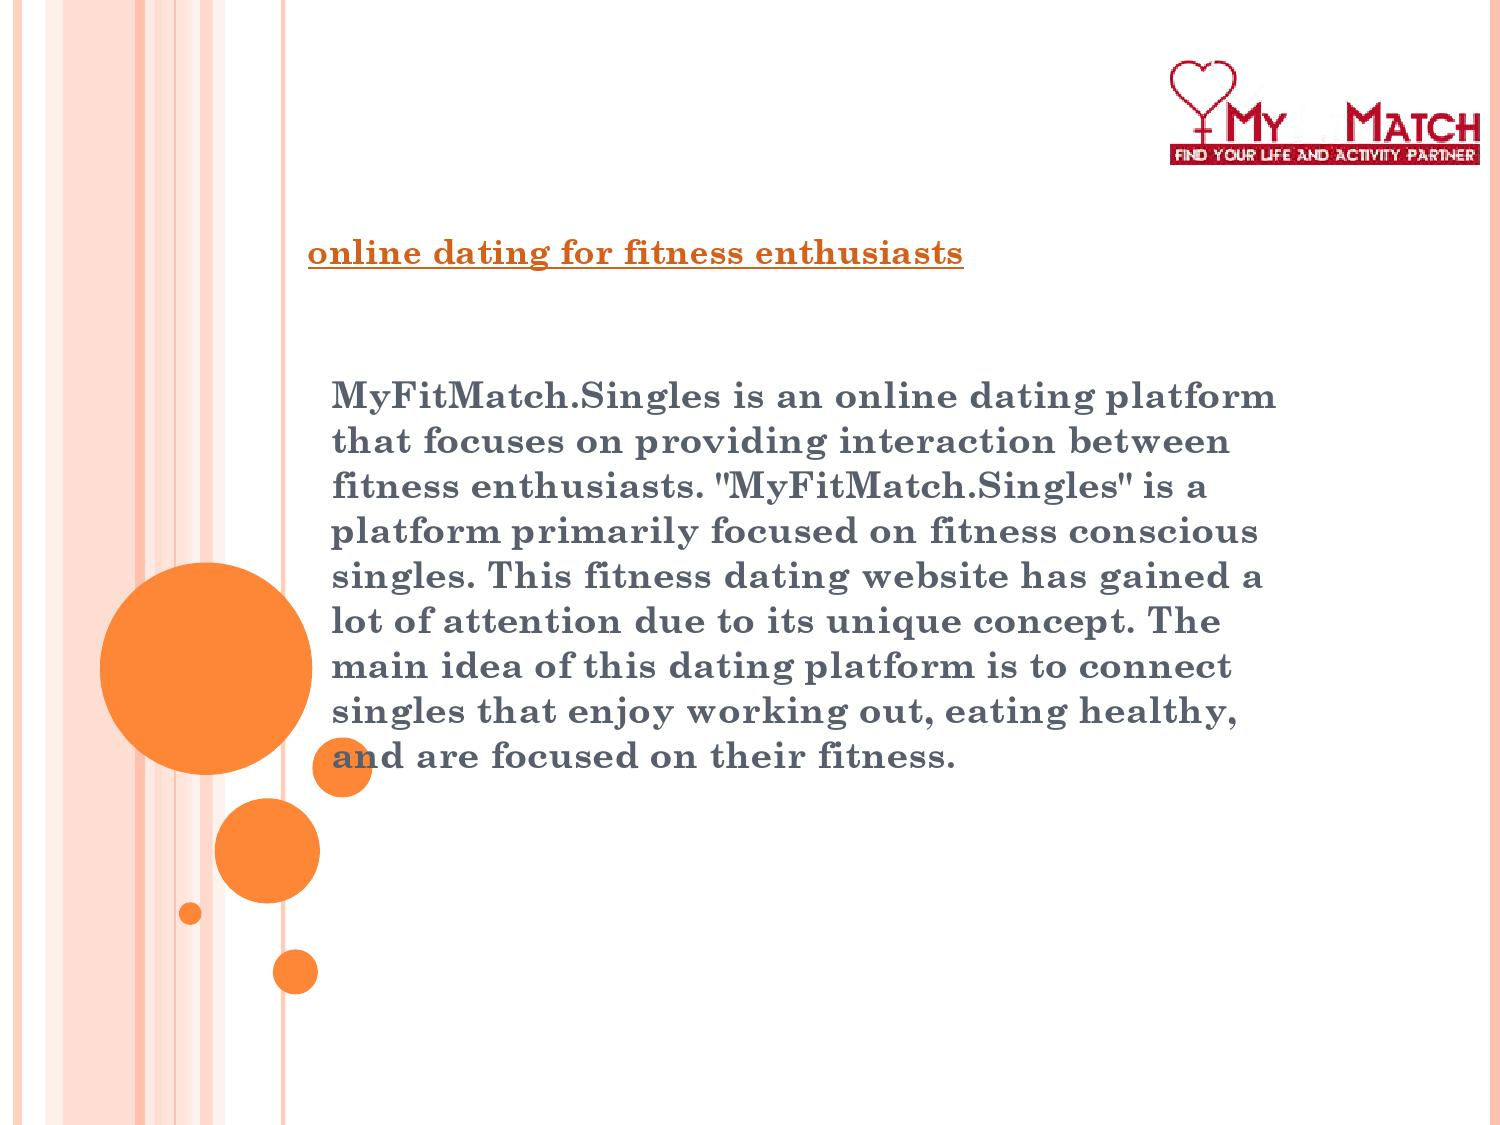 Dating site activity partner